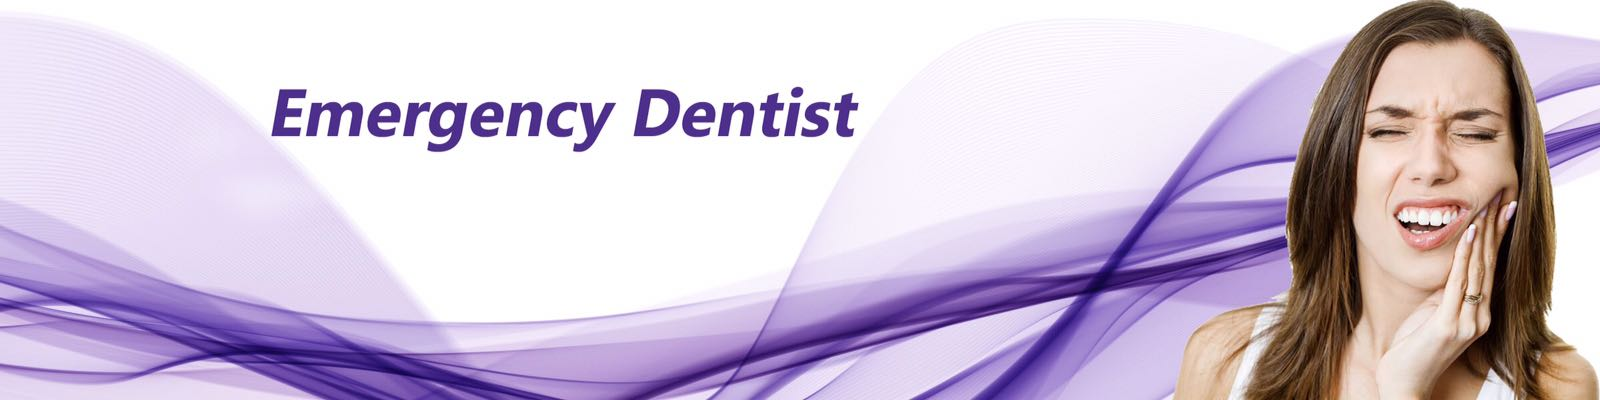 Emergency Dentist In Edinburg